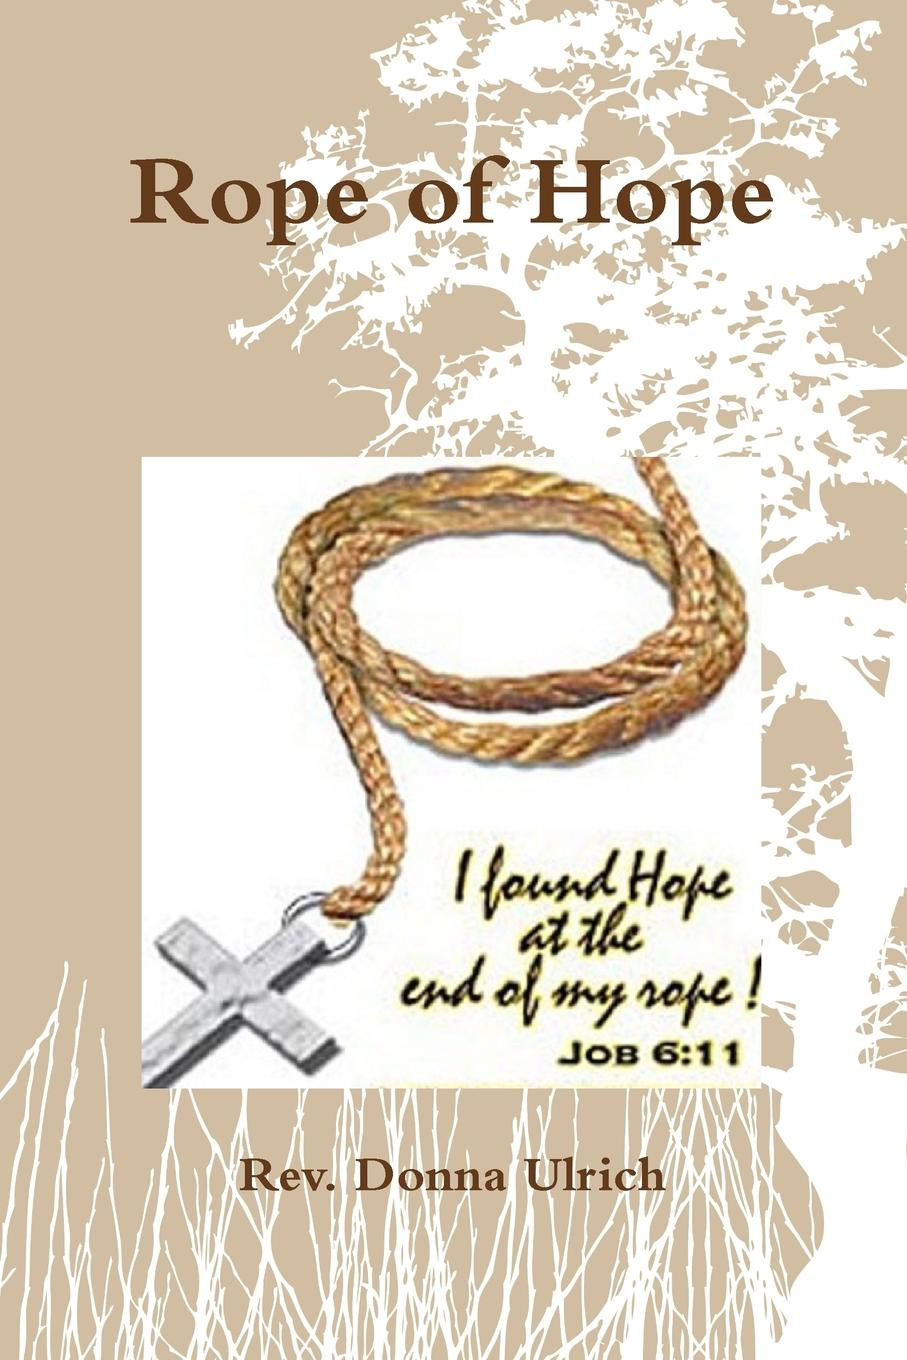 Rev. Donna Ulrich Rope of Hope nina rae springfields the power of hope